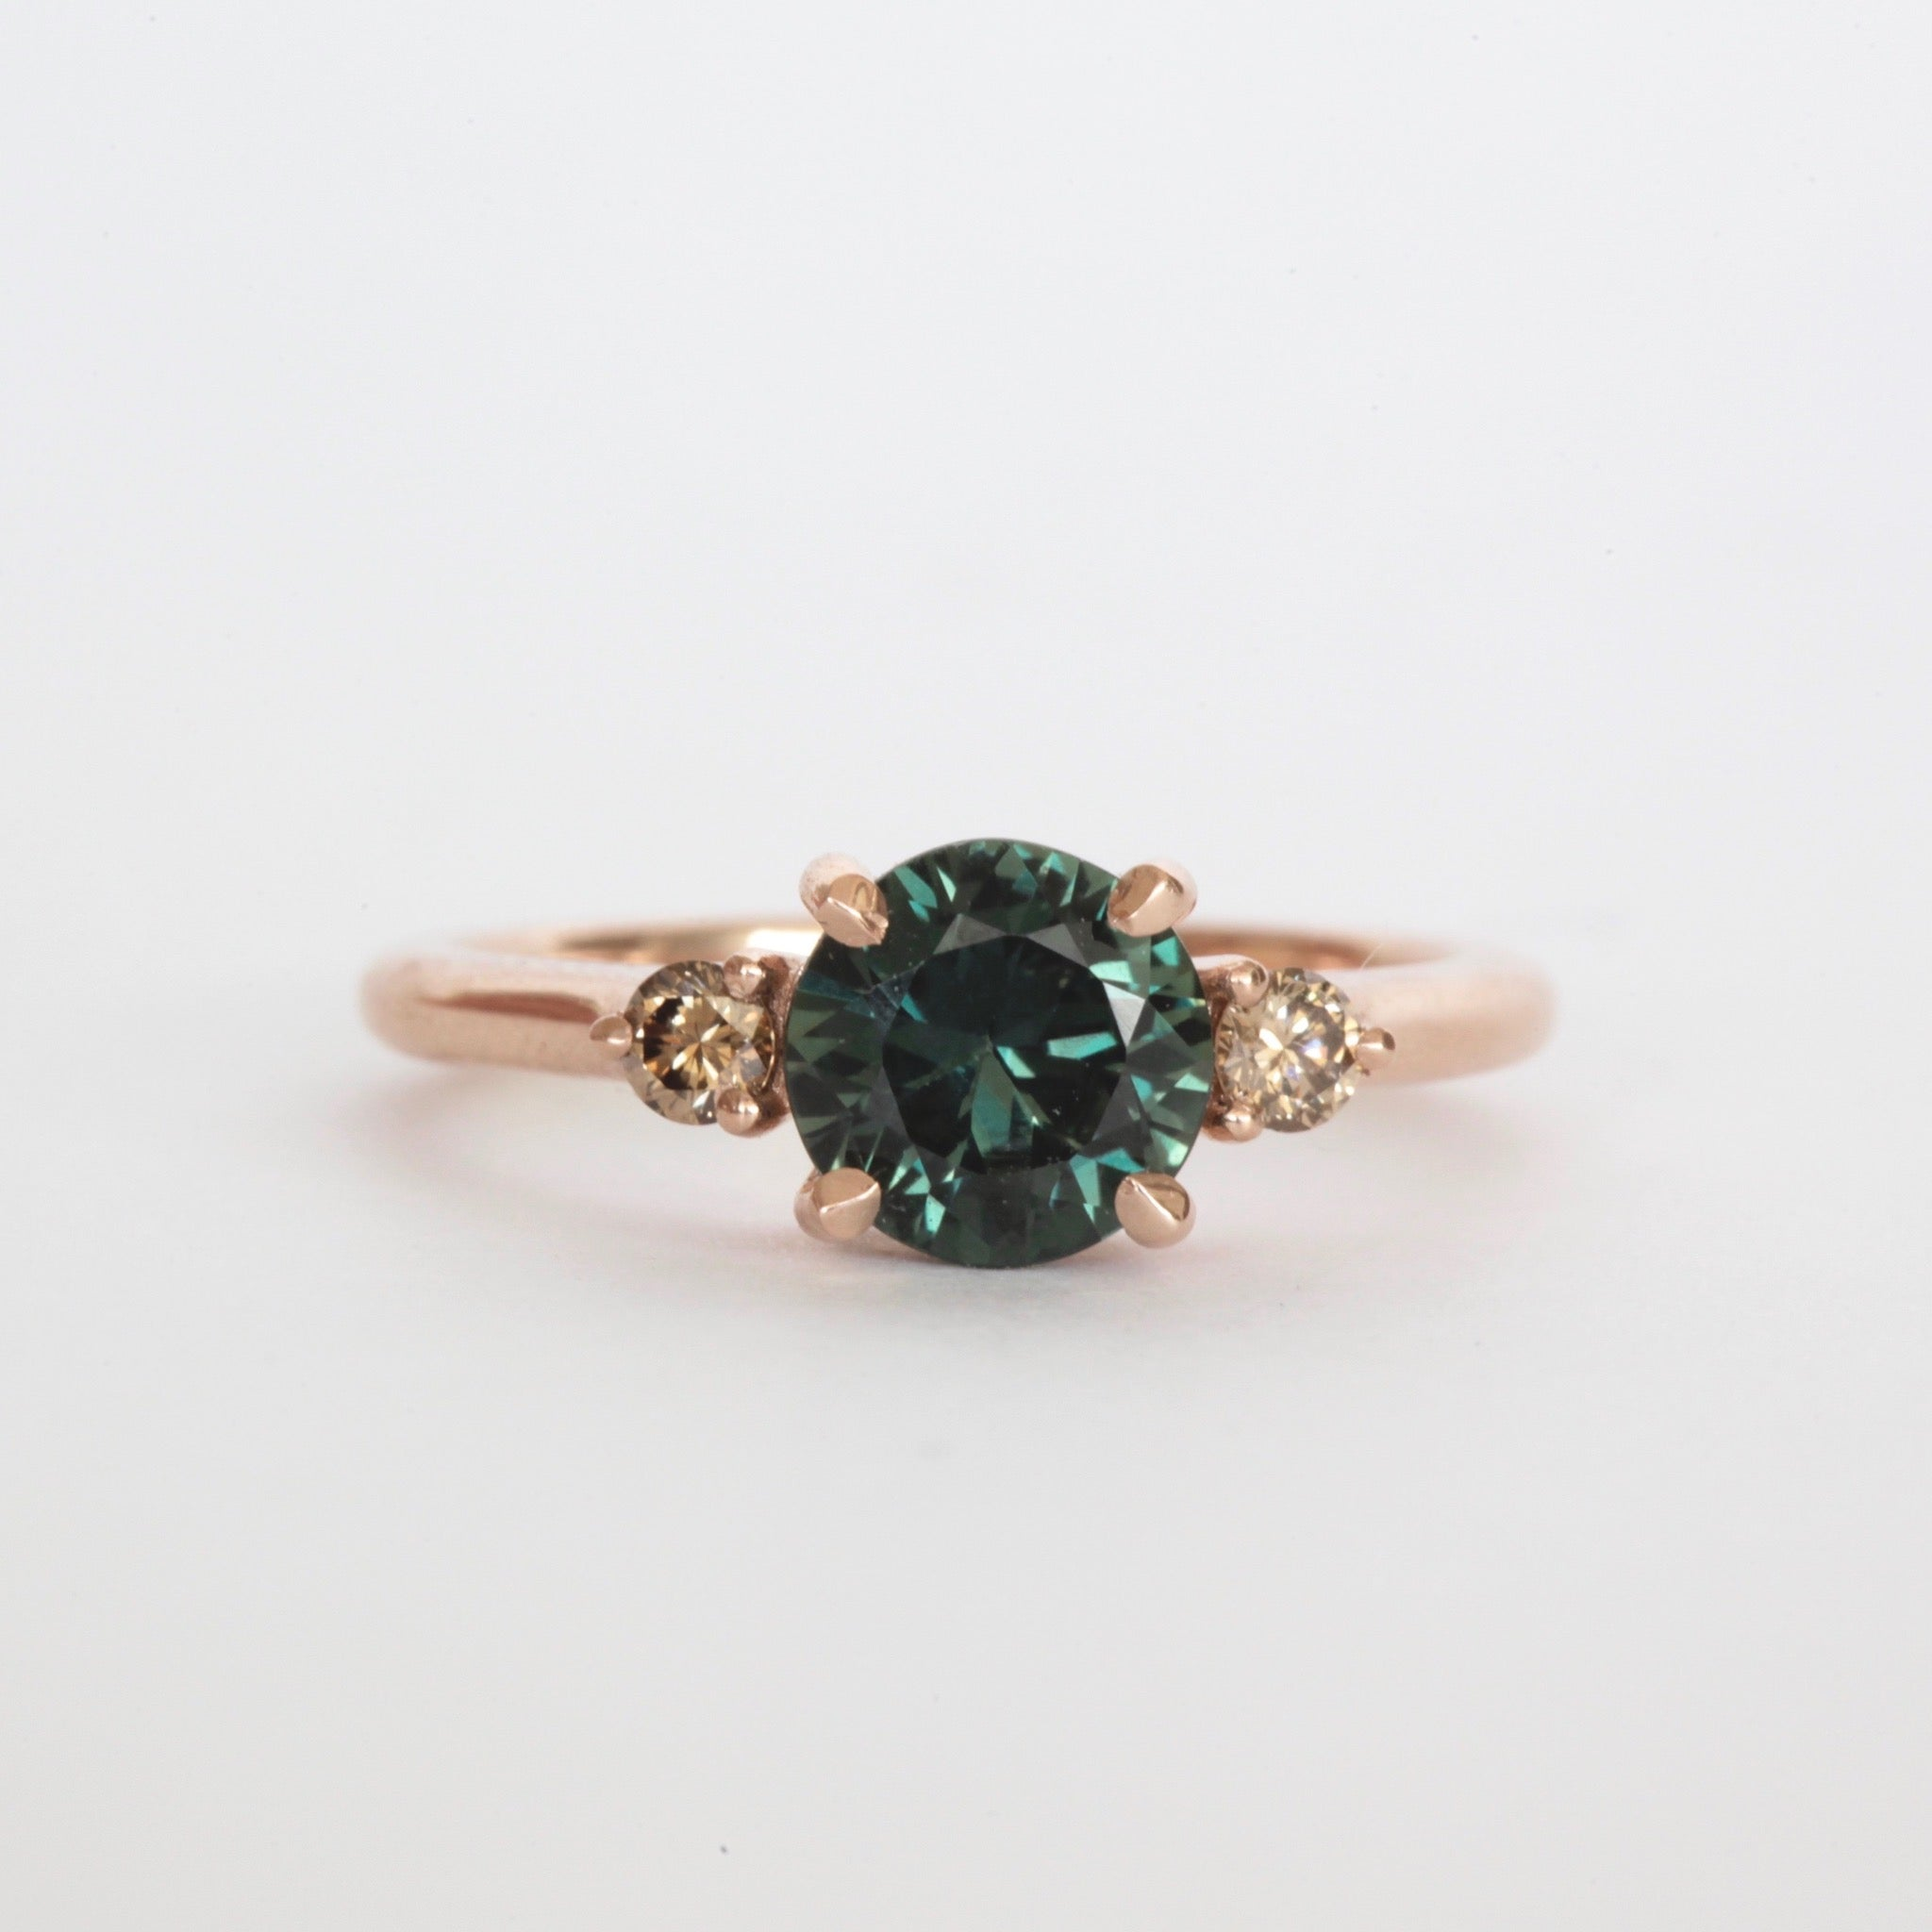 Australian Green Sapphire and Cognac Diamond Engagement Ring in 18ct Rose Gold, Custom bespoke handmade jewellery